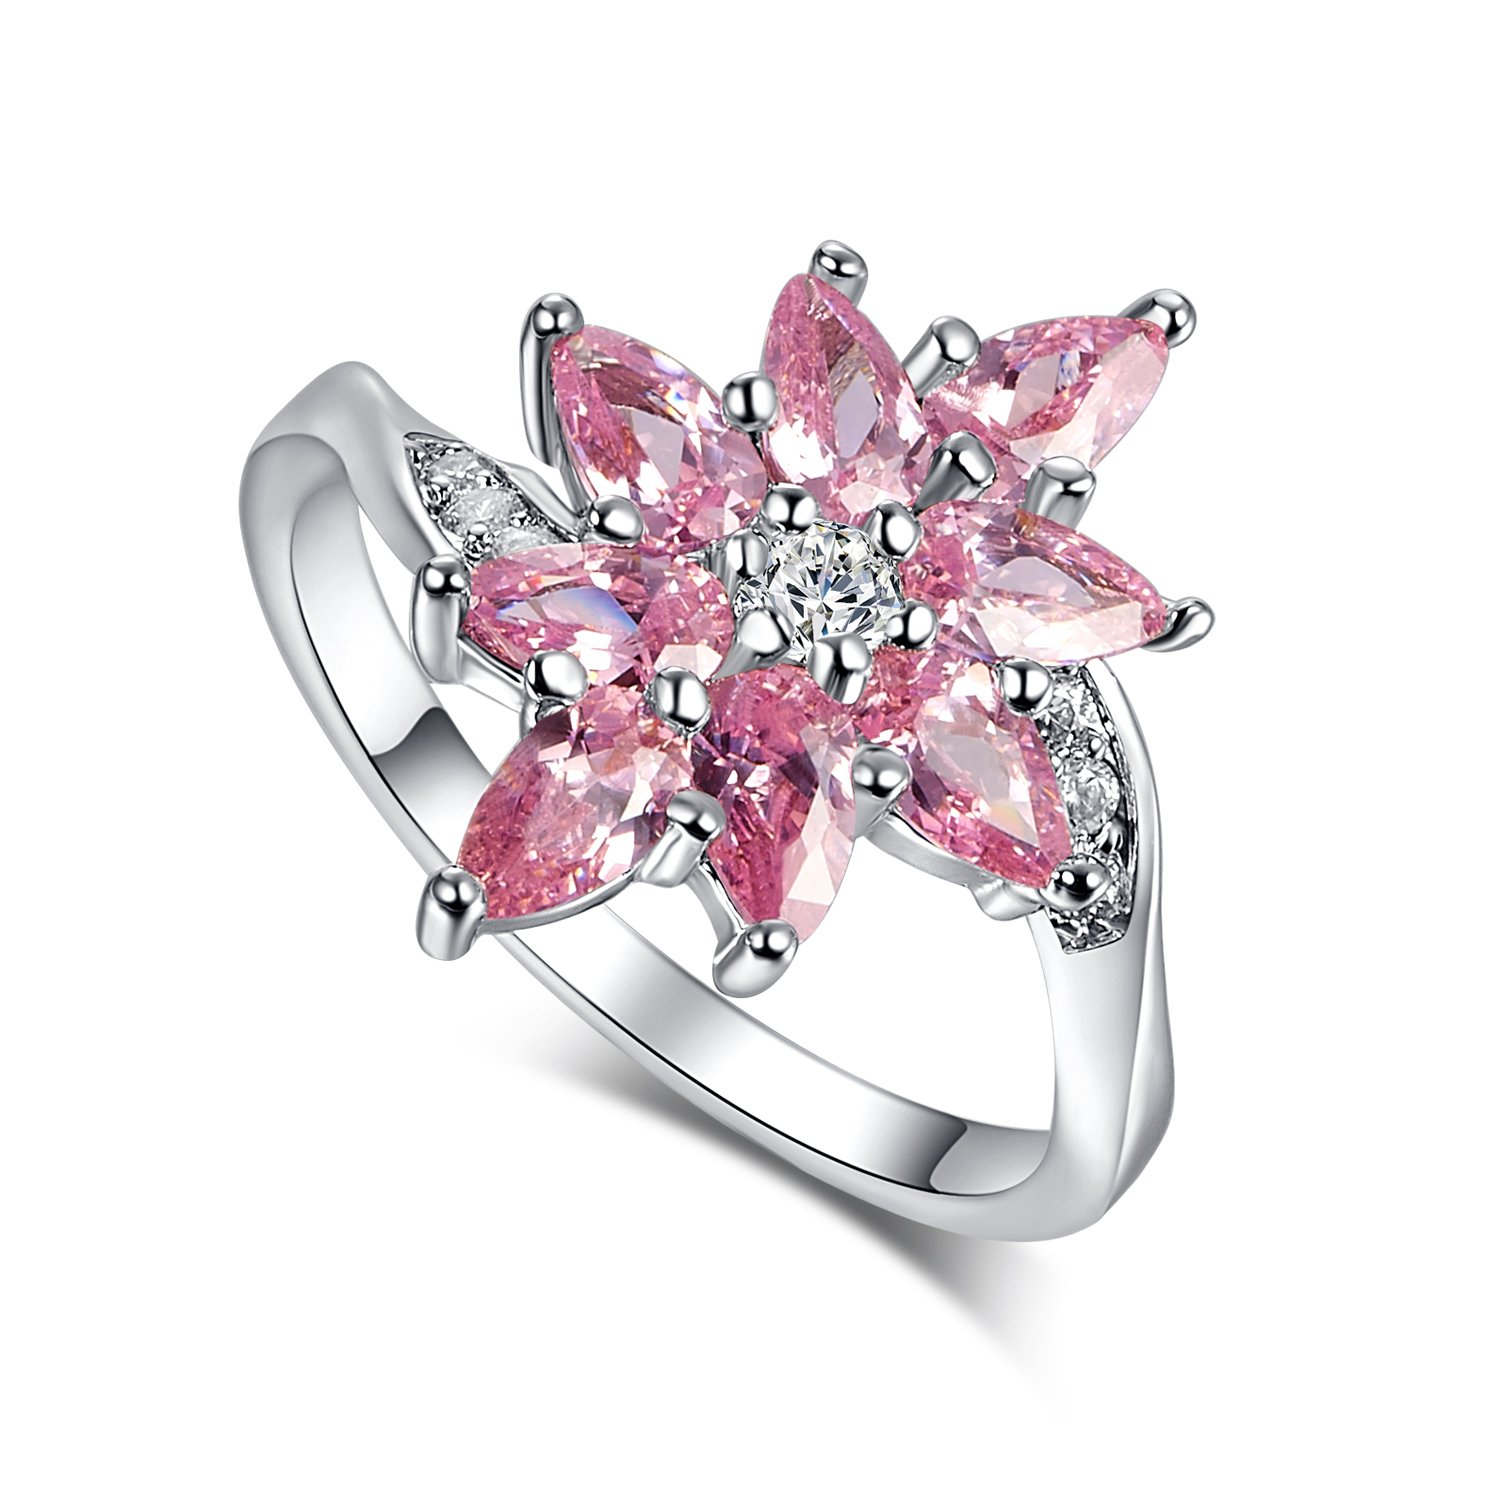 Psiroy 925 Sterling Silver Created Pink Topaz Filled Cluster Flower Anniversary Ring Size 8